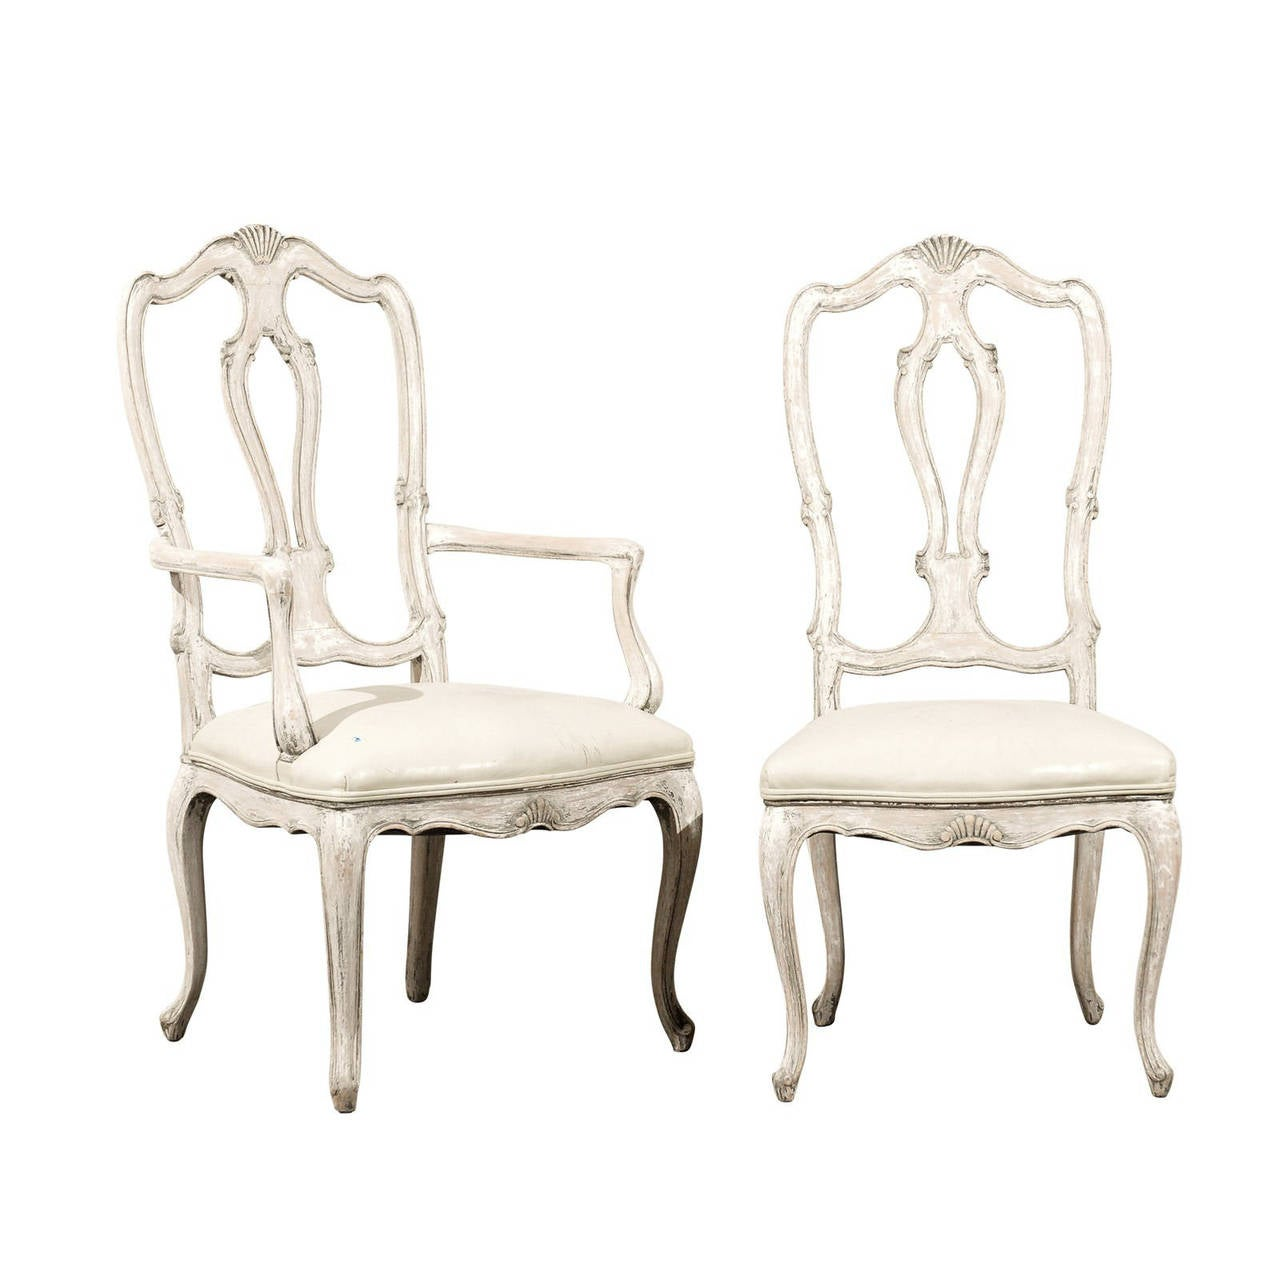 Set Of 12 Italian Style Painted Wood Dining Chairs With